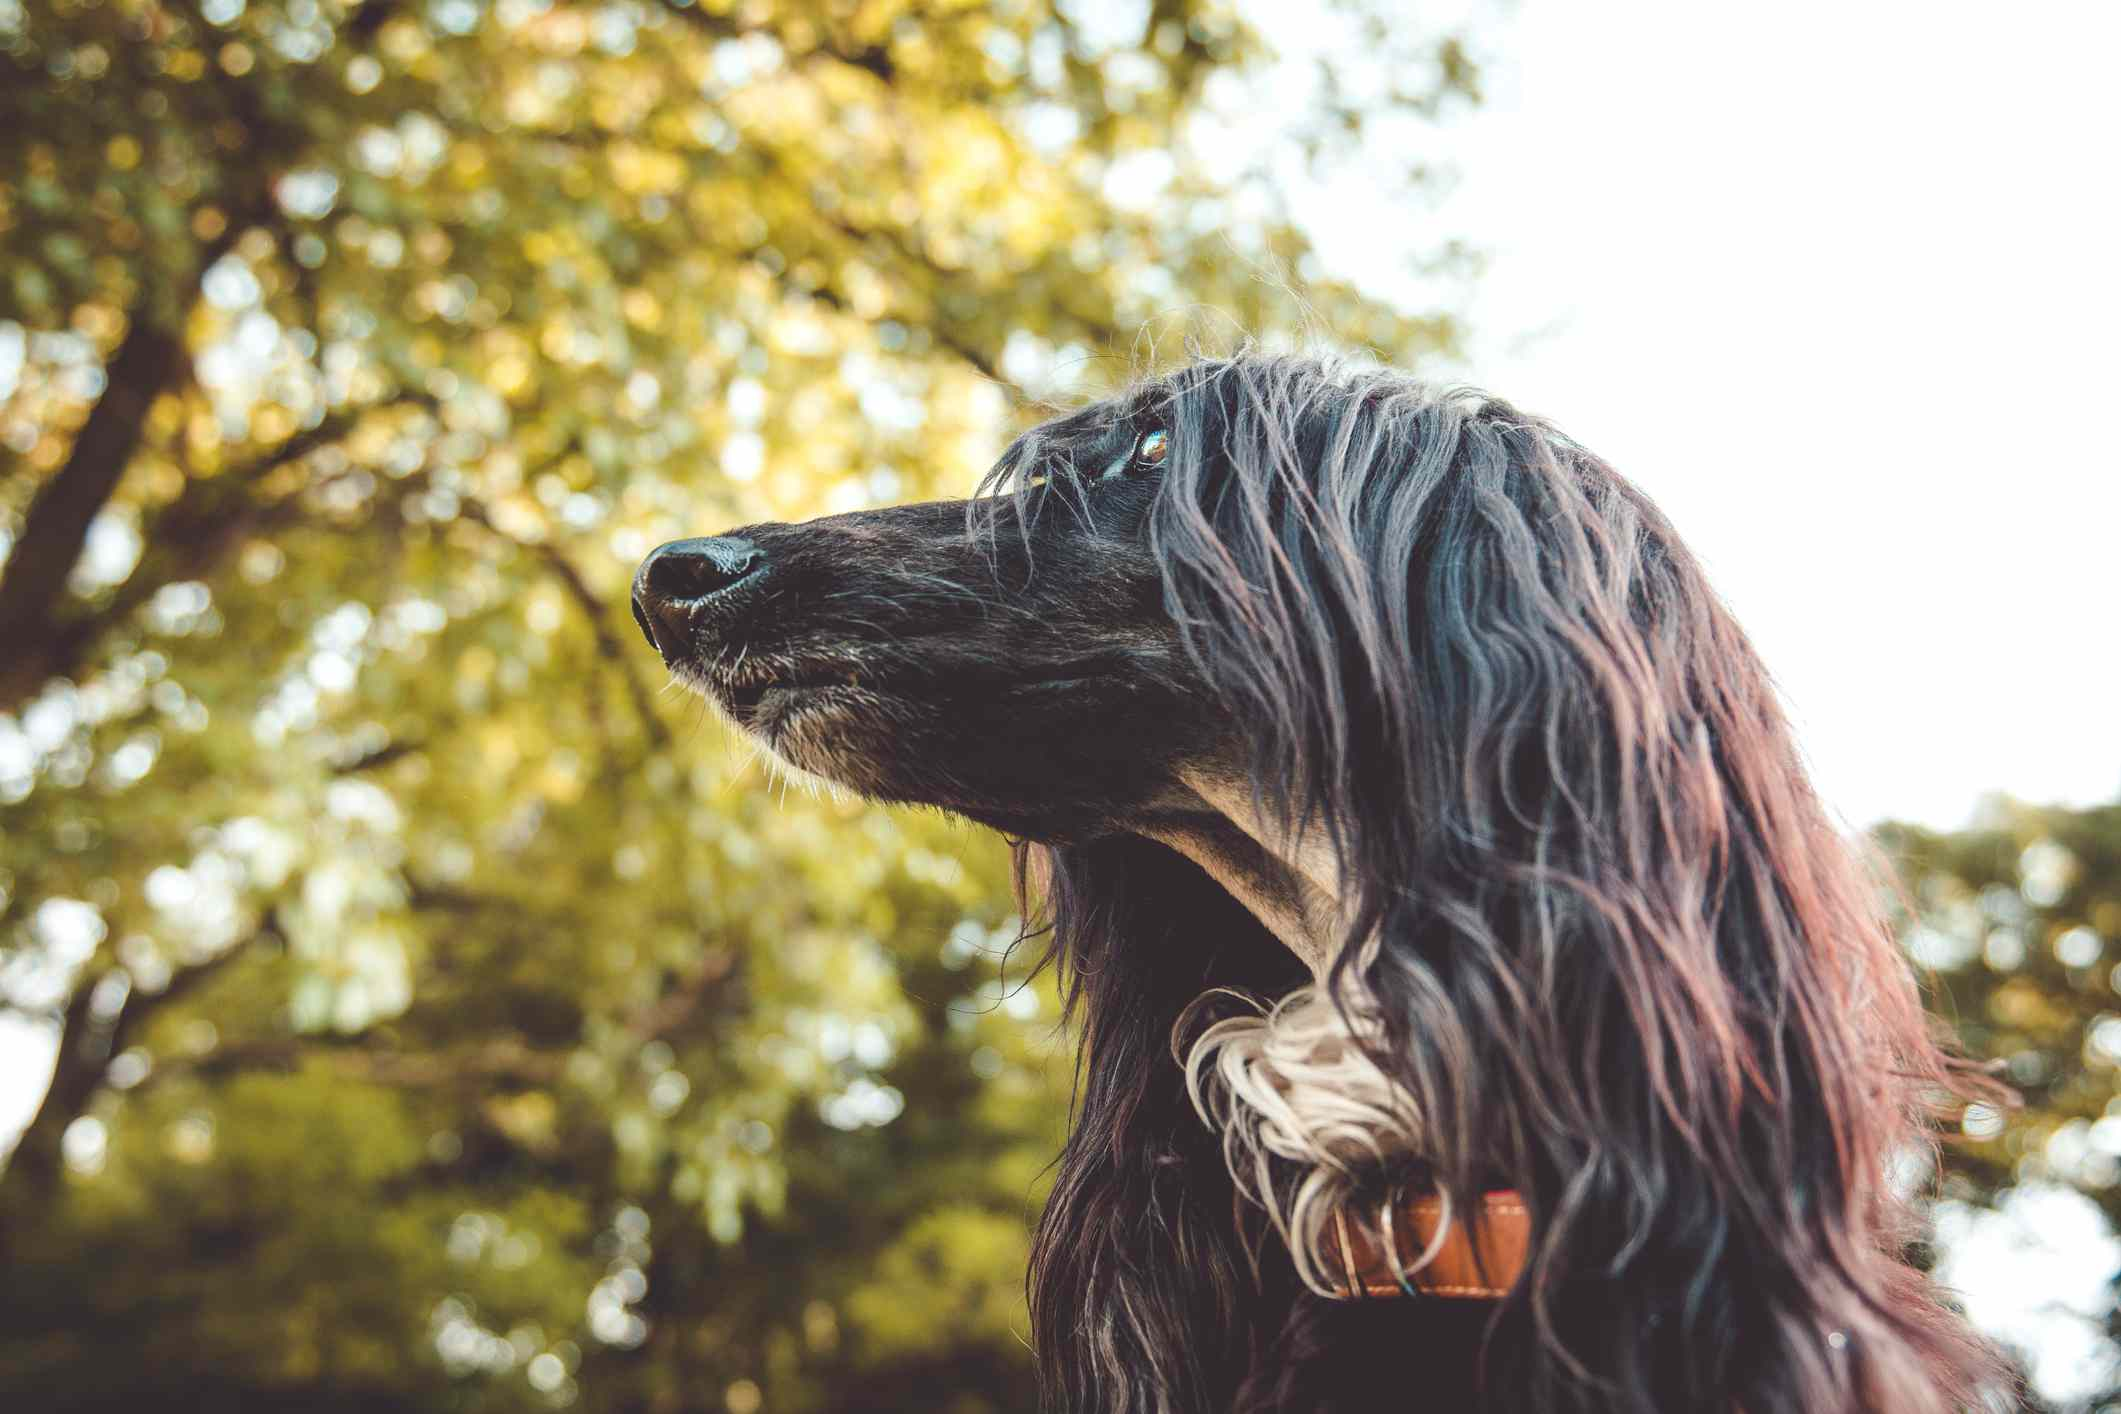 Close up on face of Afghan Hound dog with tree in background.